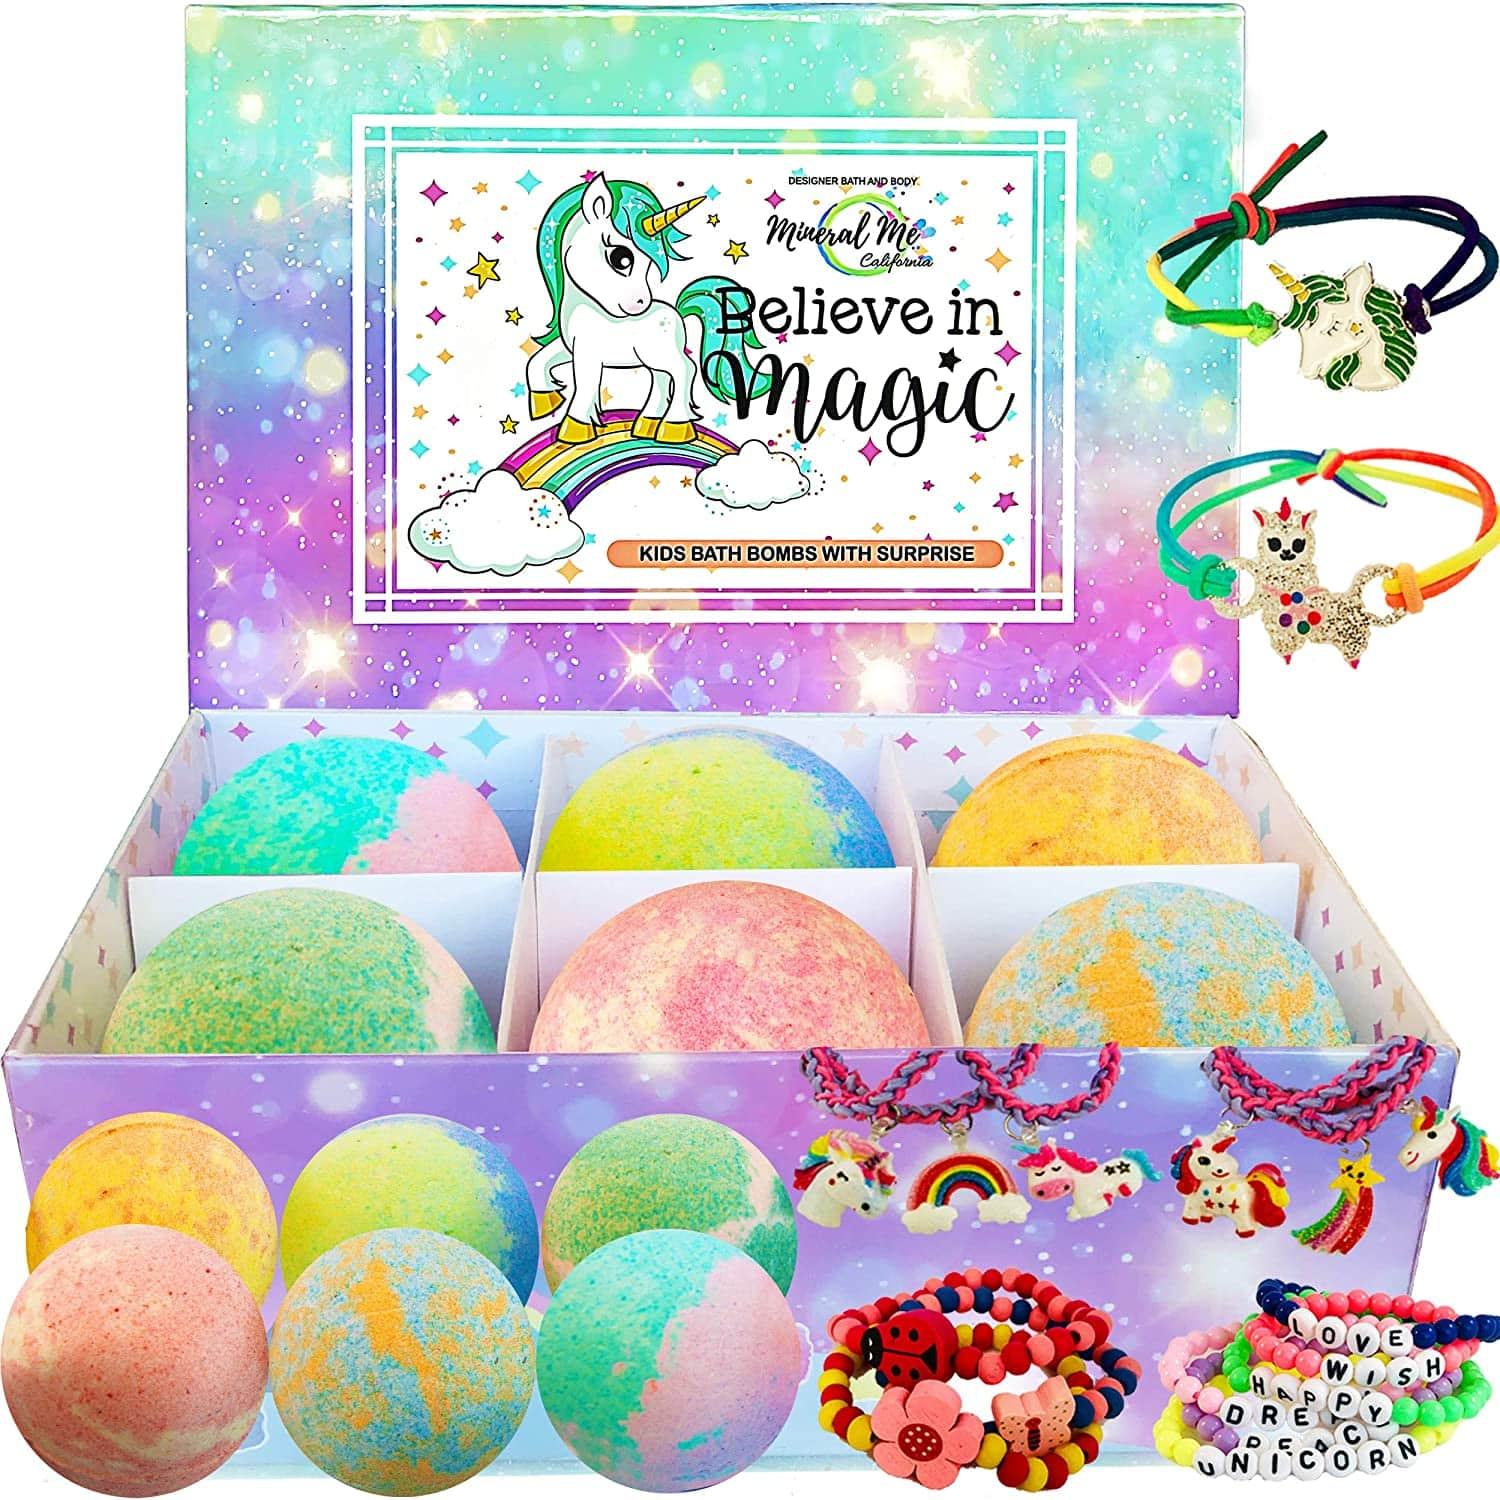 Unicorn Bath bombs by Mineral Me